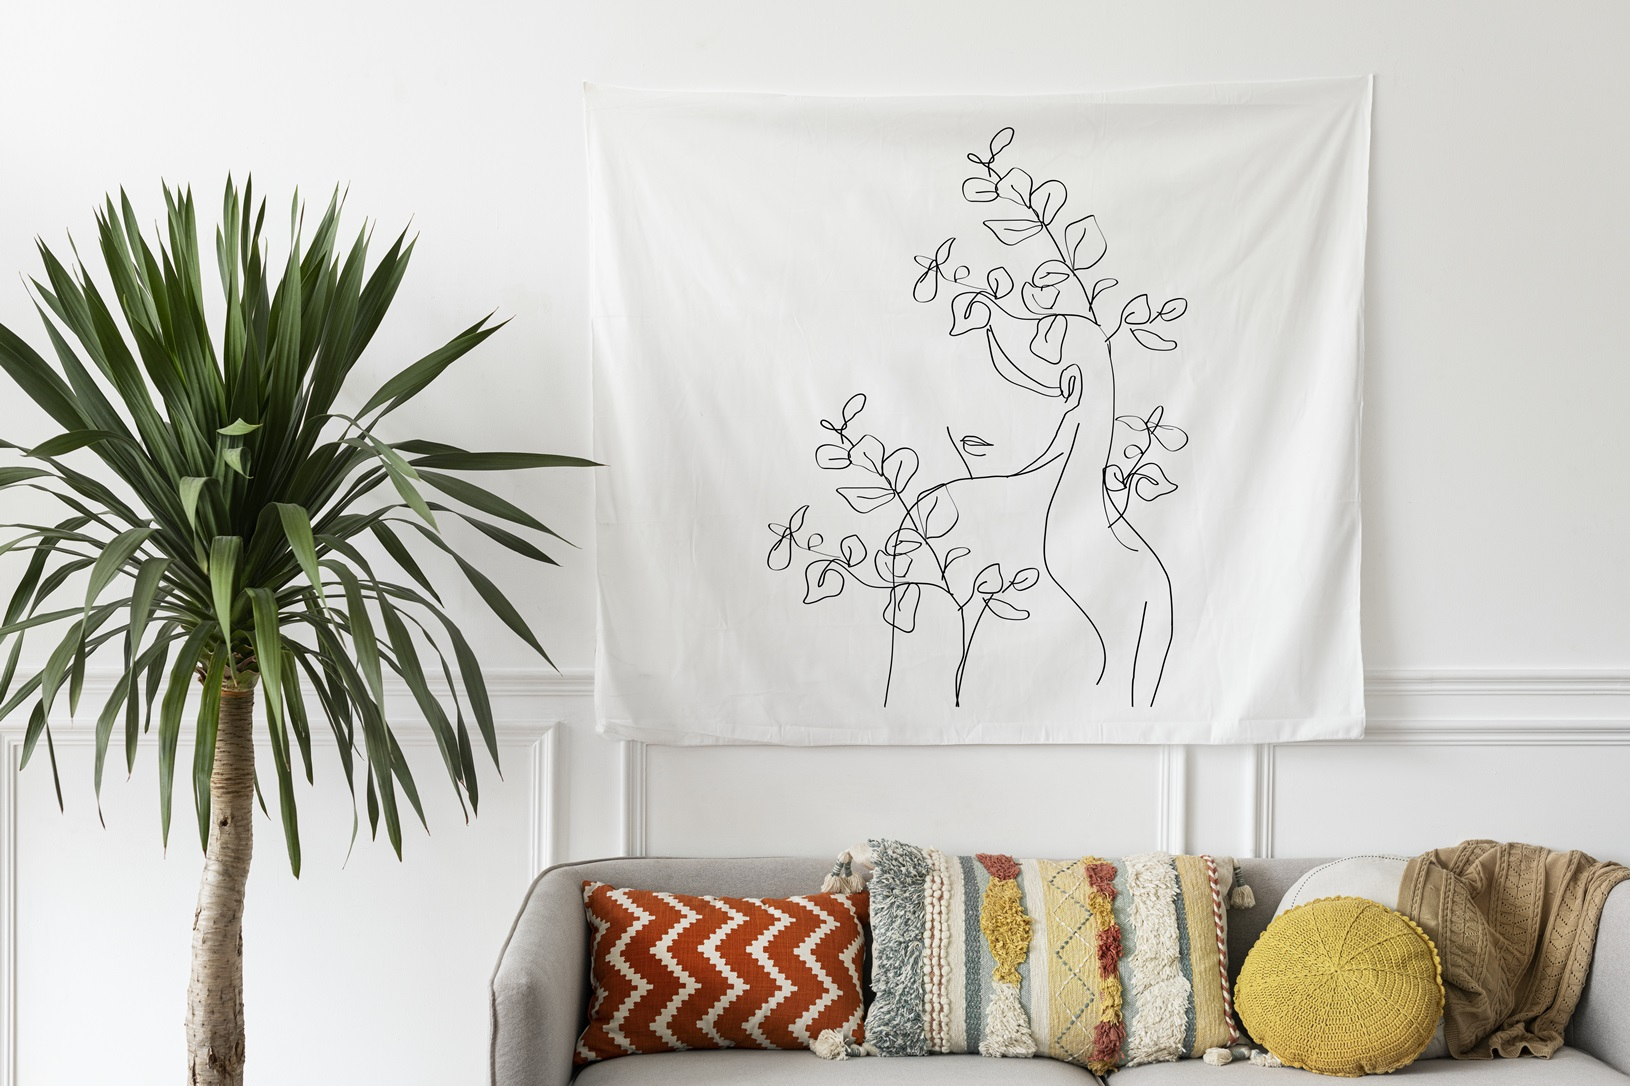 6 Ways to Accessorize Your Room with Timeless Tapestries